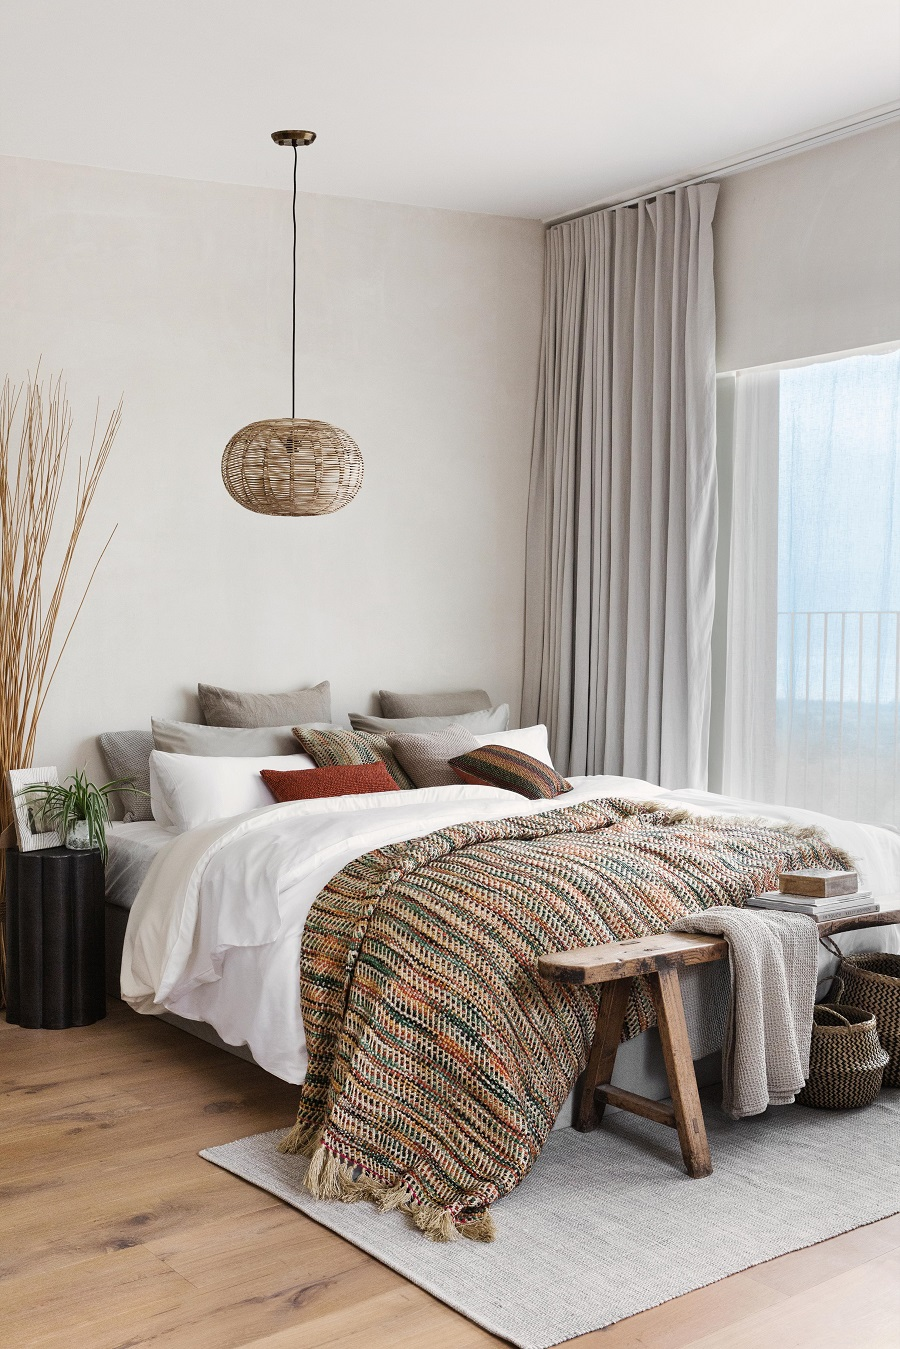 Add a Global Wanderer Vibe to Your Interior Without Leaving Home